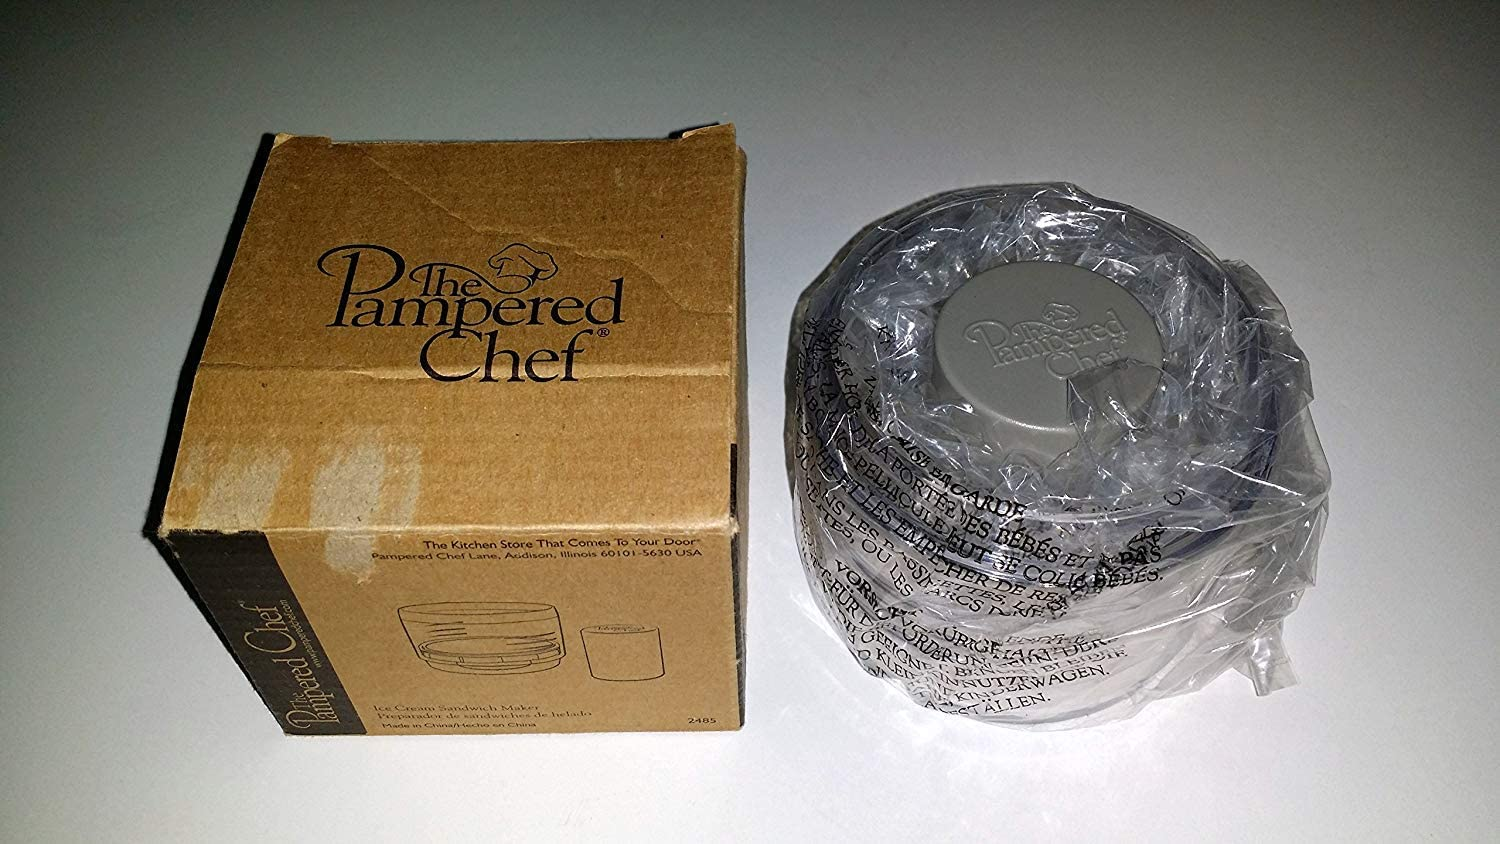 The Pampered Chef #2485 – Expensive ice cream sandwich maker